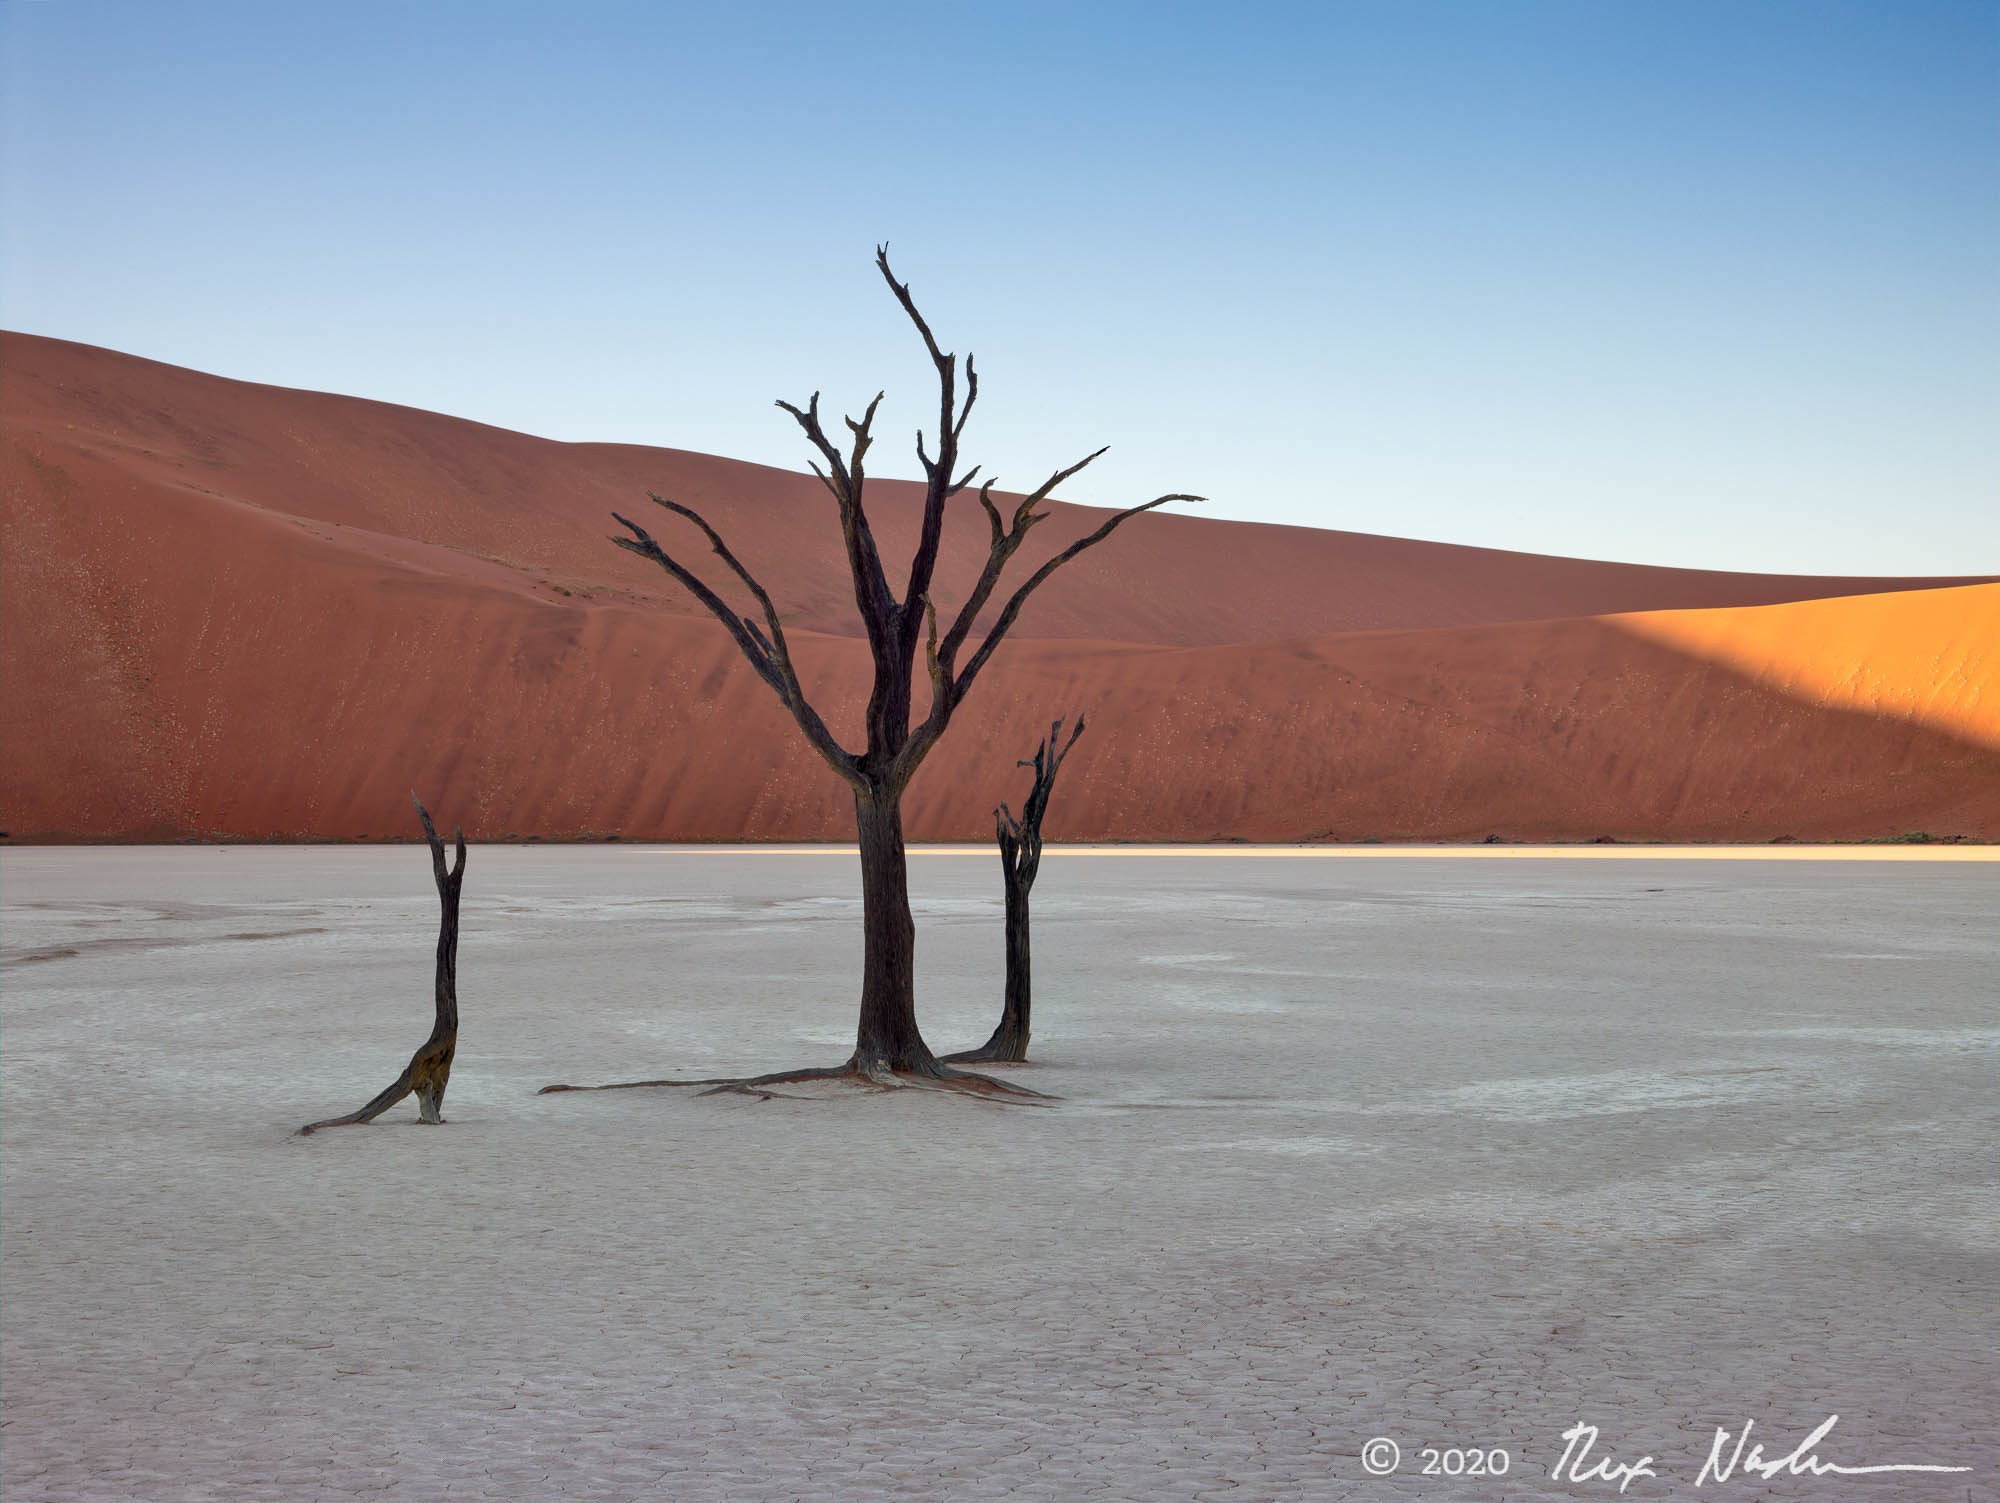 Blade of Sun - Namibia, Southern Africa